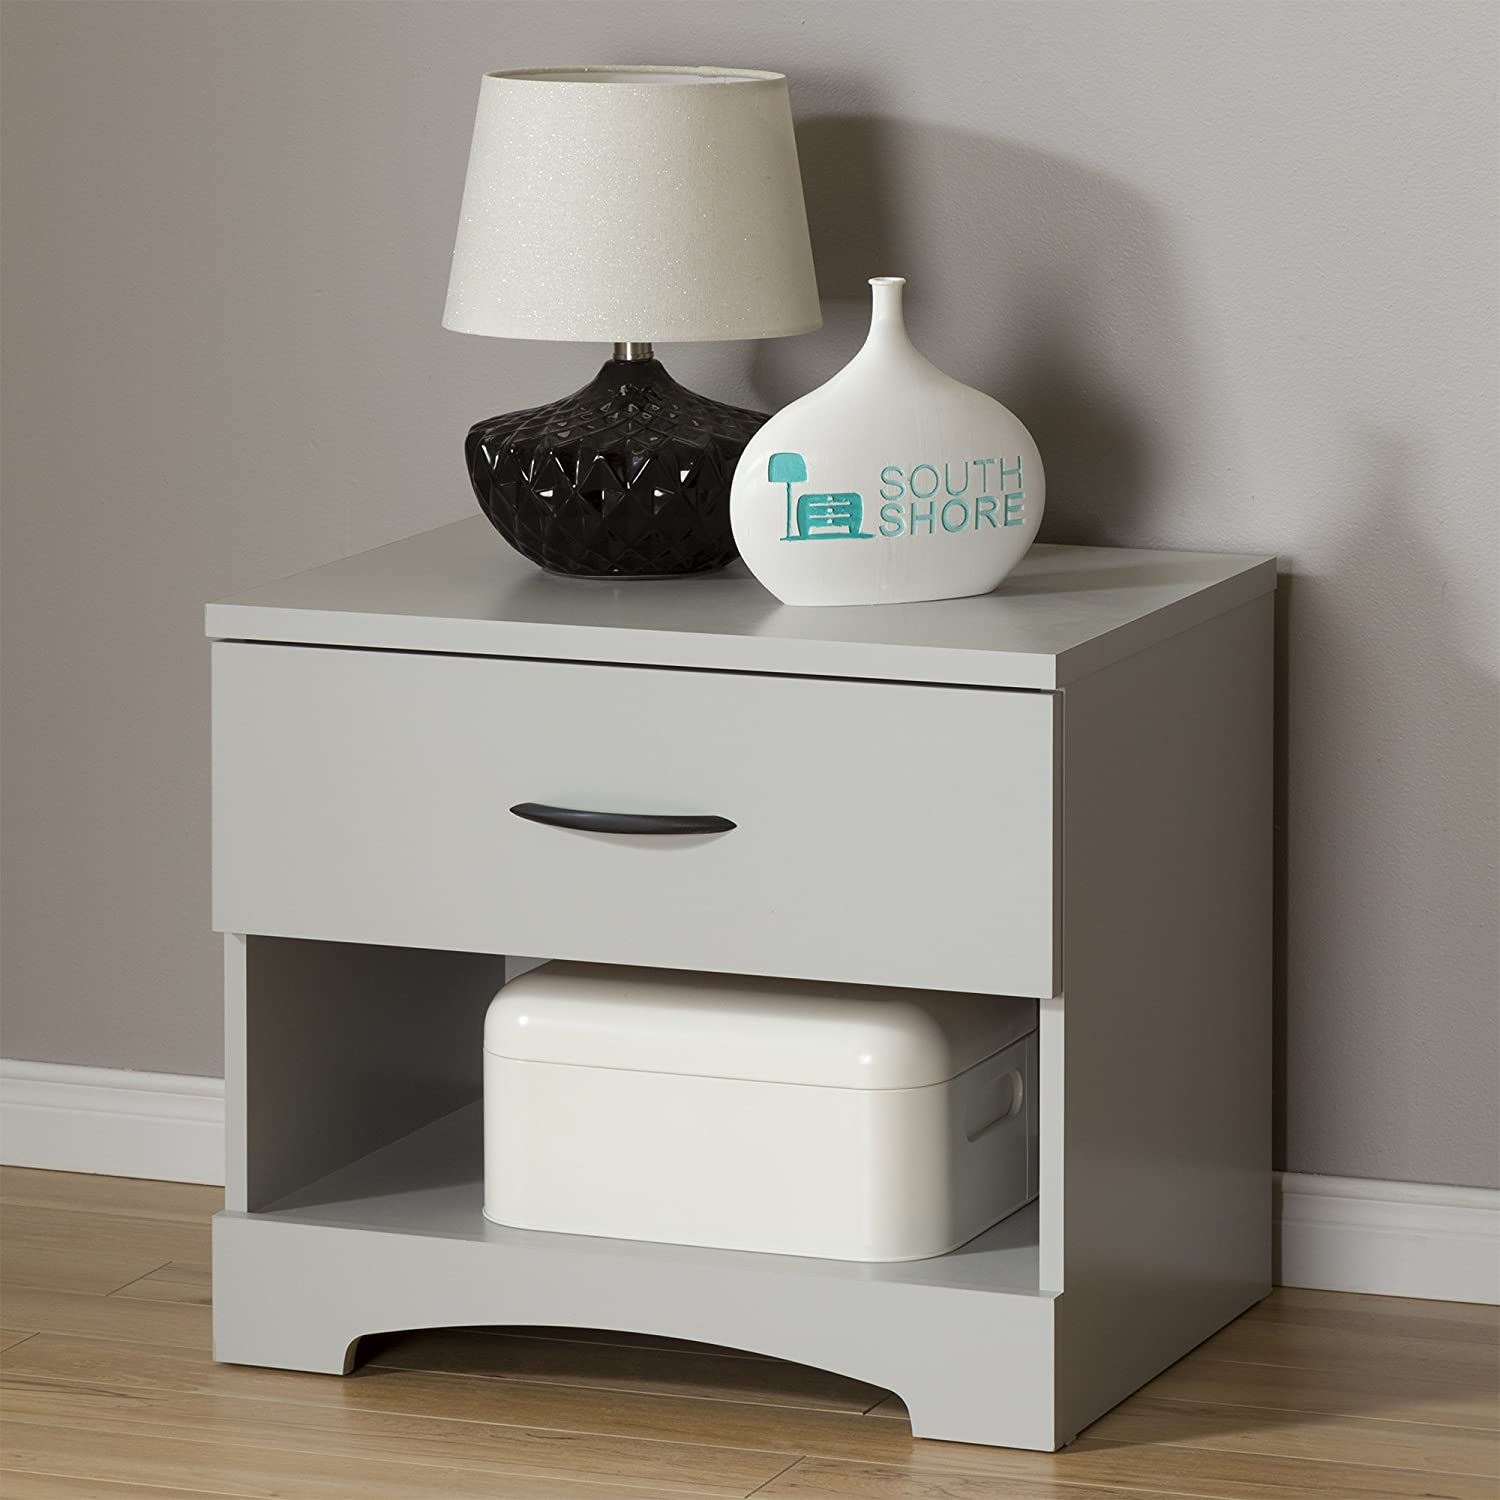 South Shore Step One 1-Drawer Nightstand, Soft Gray with Matte Nickel Handles